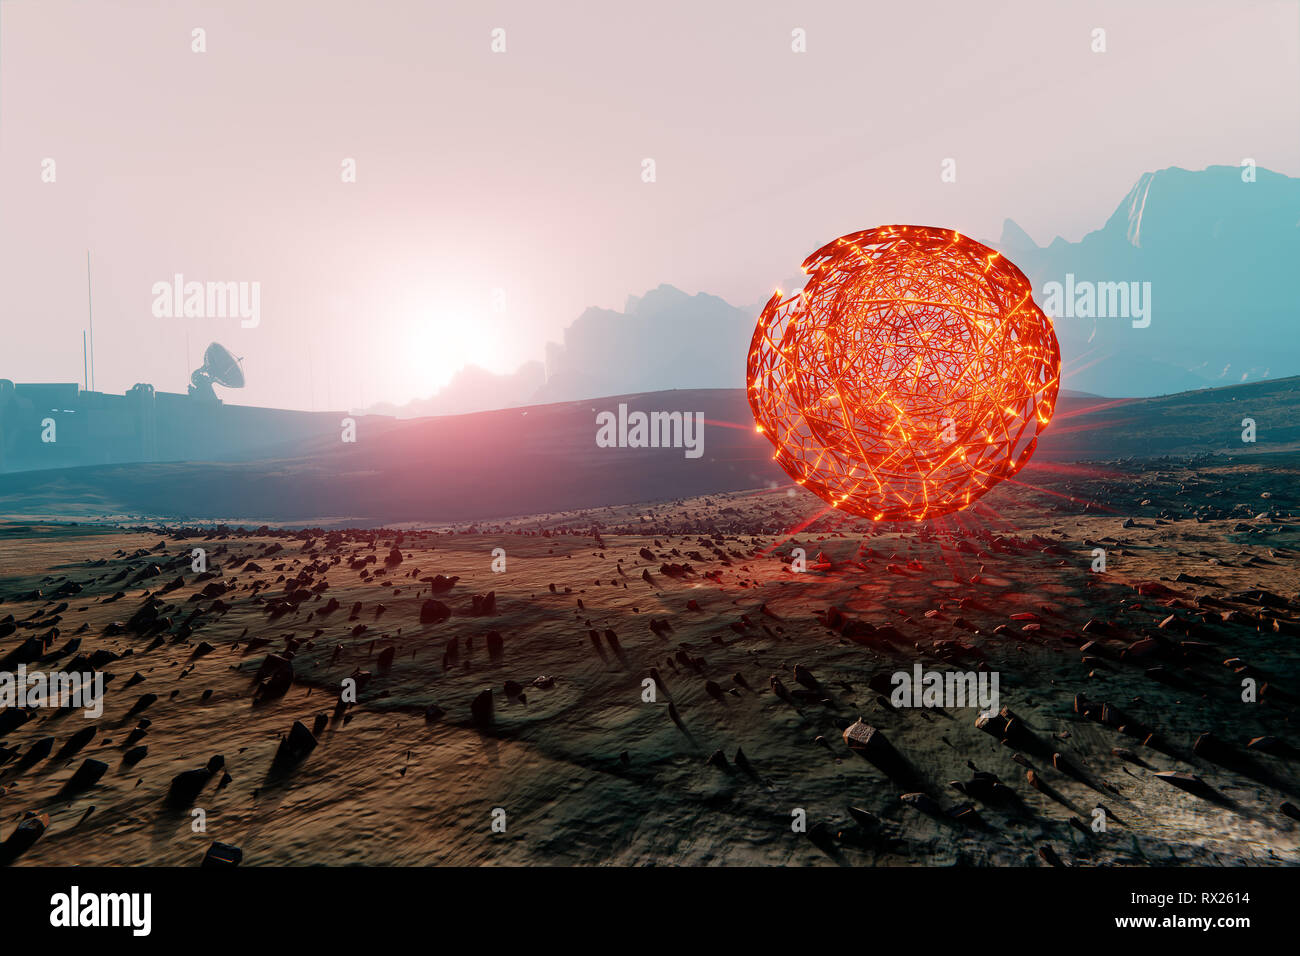 Landscape of Mars, floating spherical structure of unknown  energy, 3d illustration - Stock Image